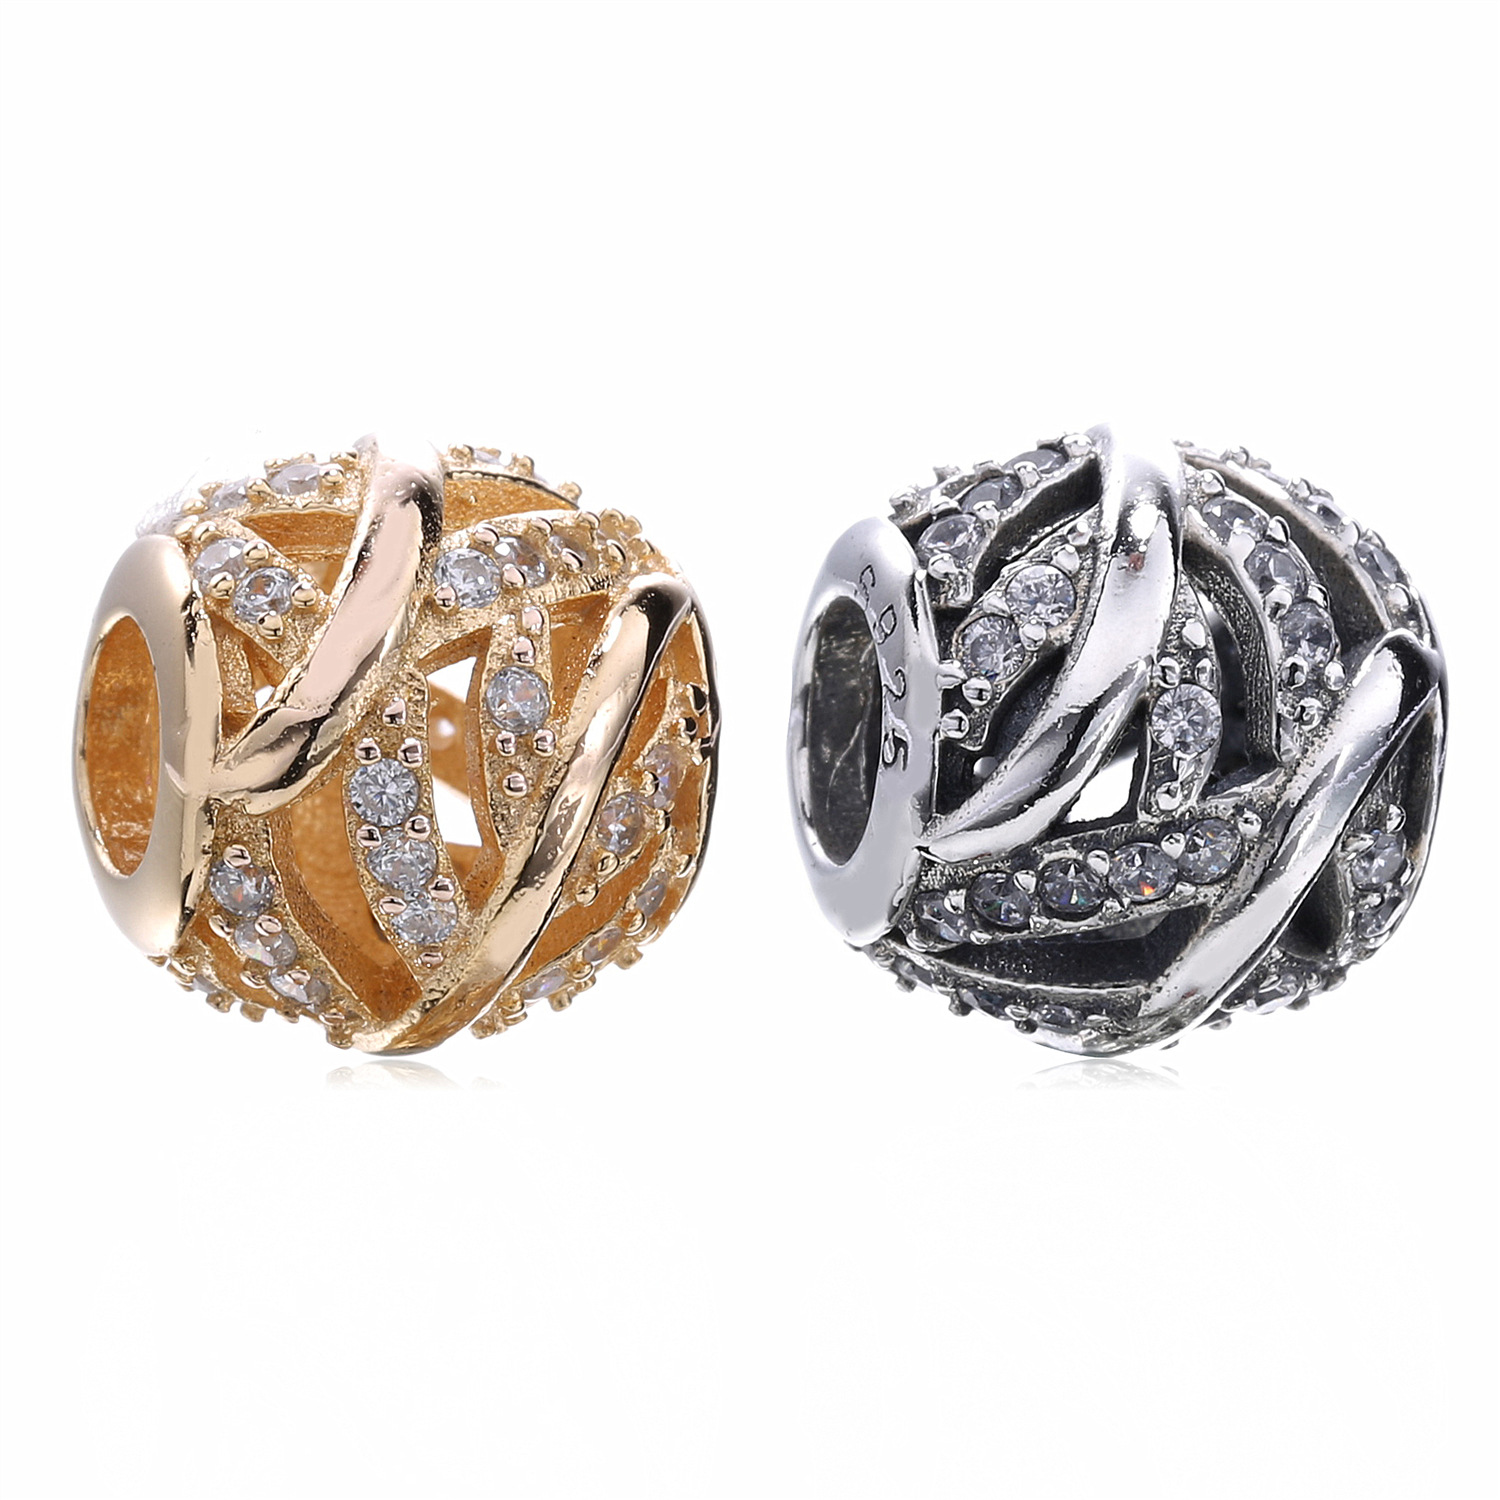 Authentic 925 Sterling Silver Galaxy Beads Fit Pandora Charm Bracelets & Bangles Necklace Diy Beads Women Jewelry Making